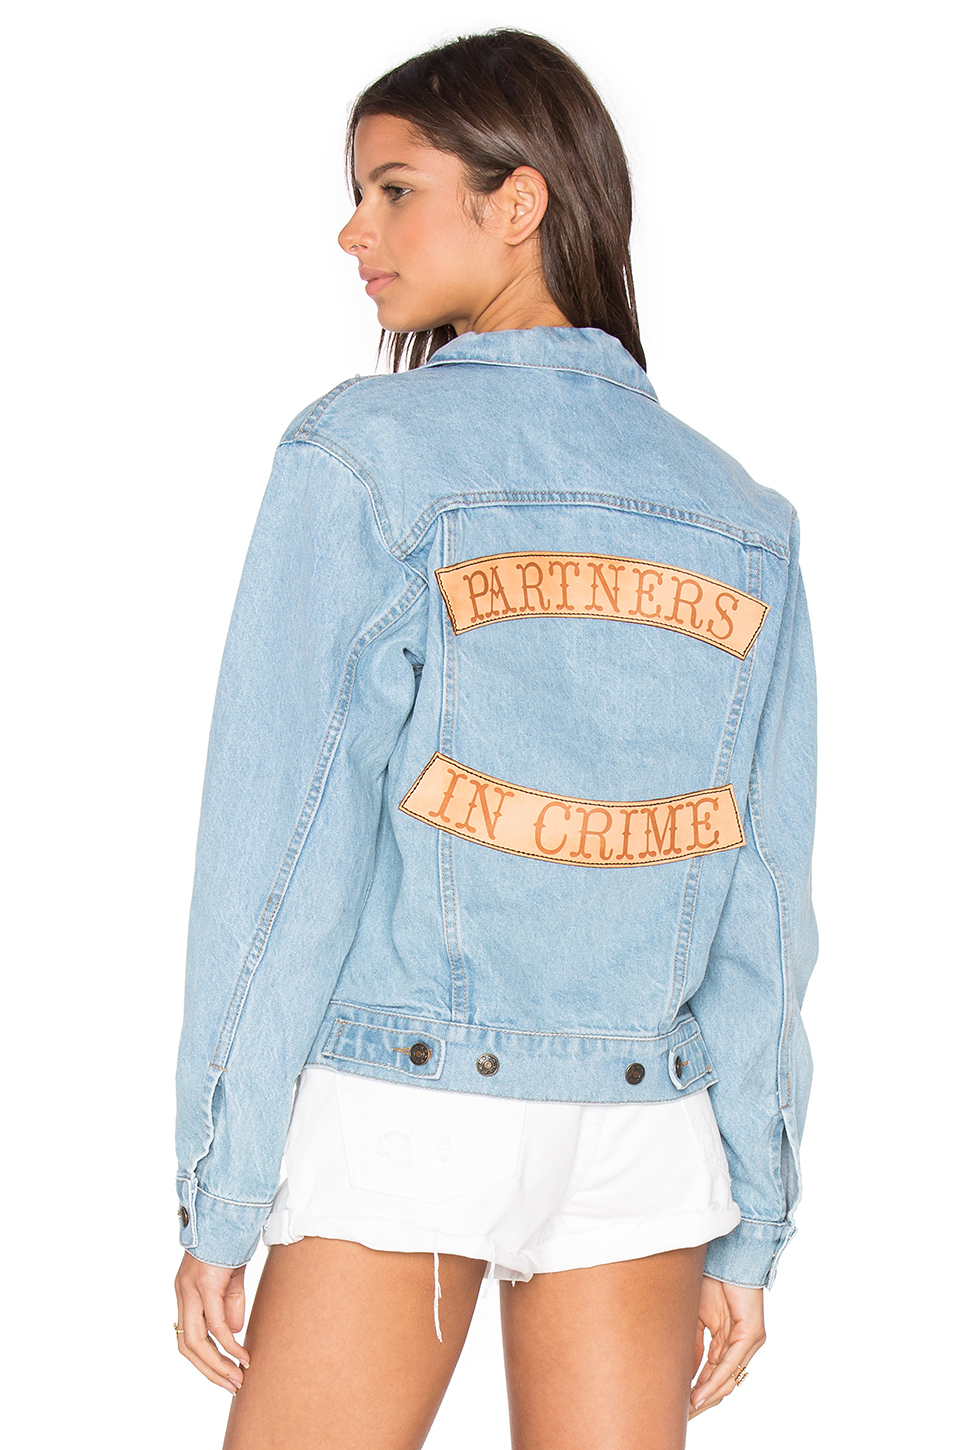 Understated Leather x Partners In Crime Denim Jacket in Sky Blue